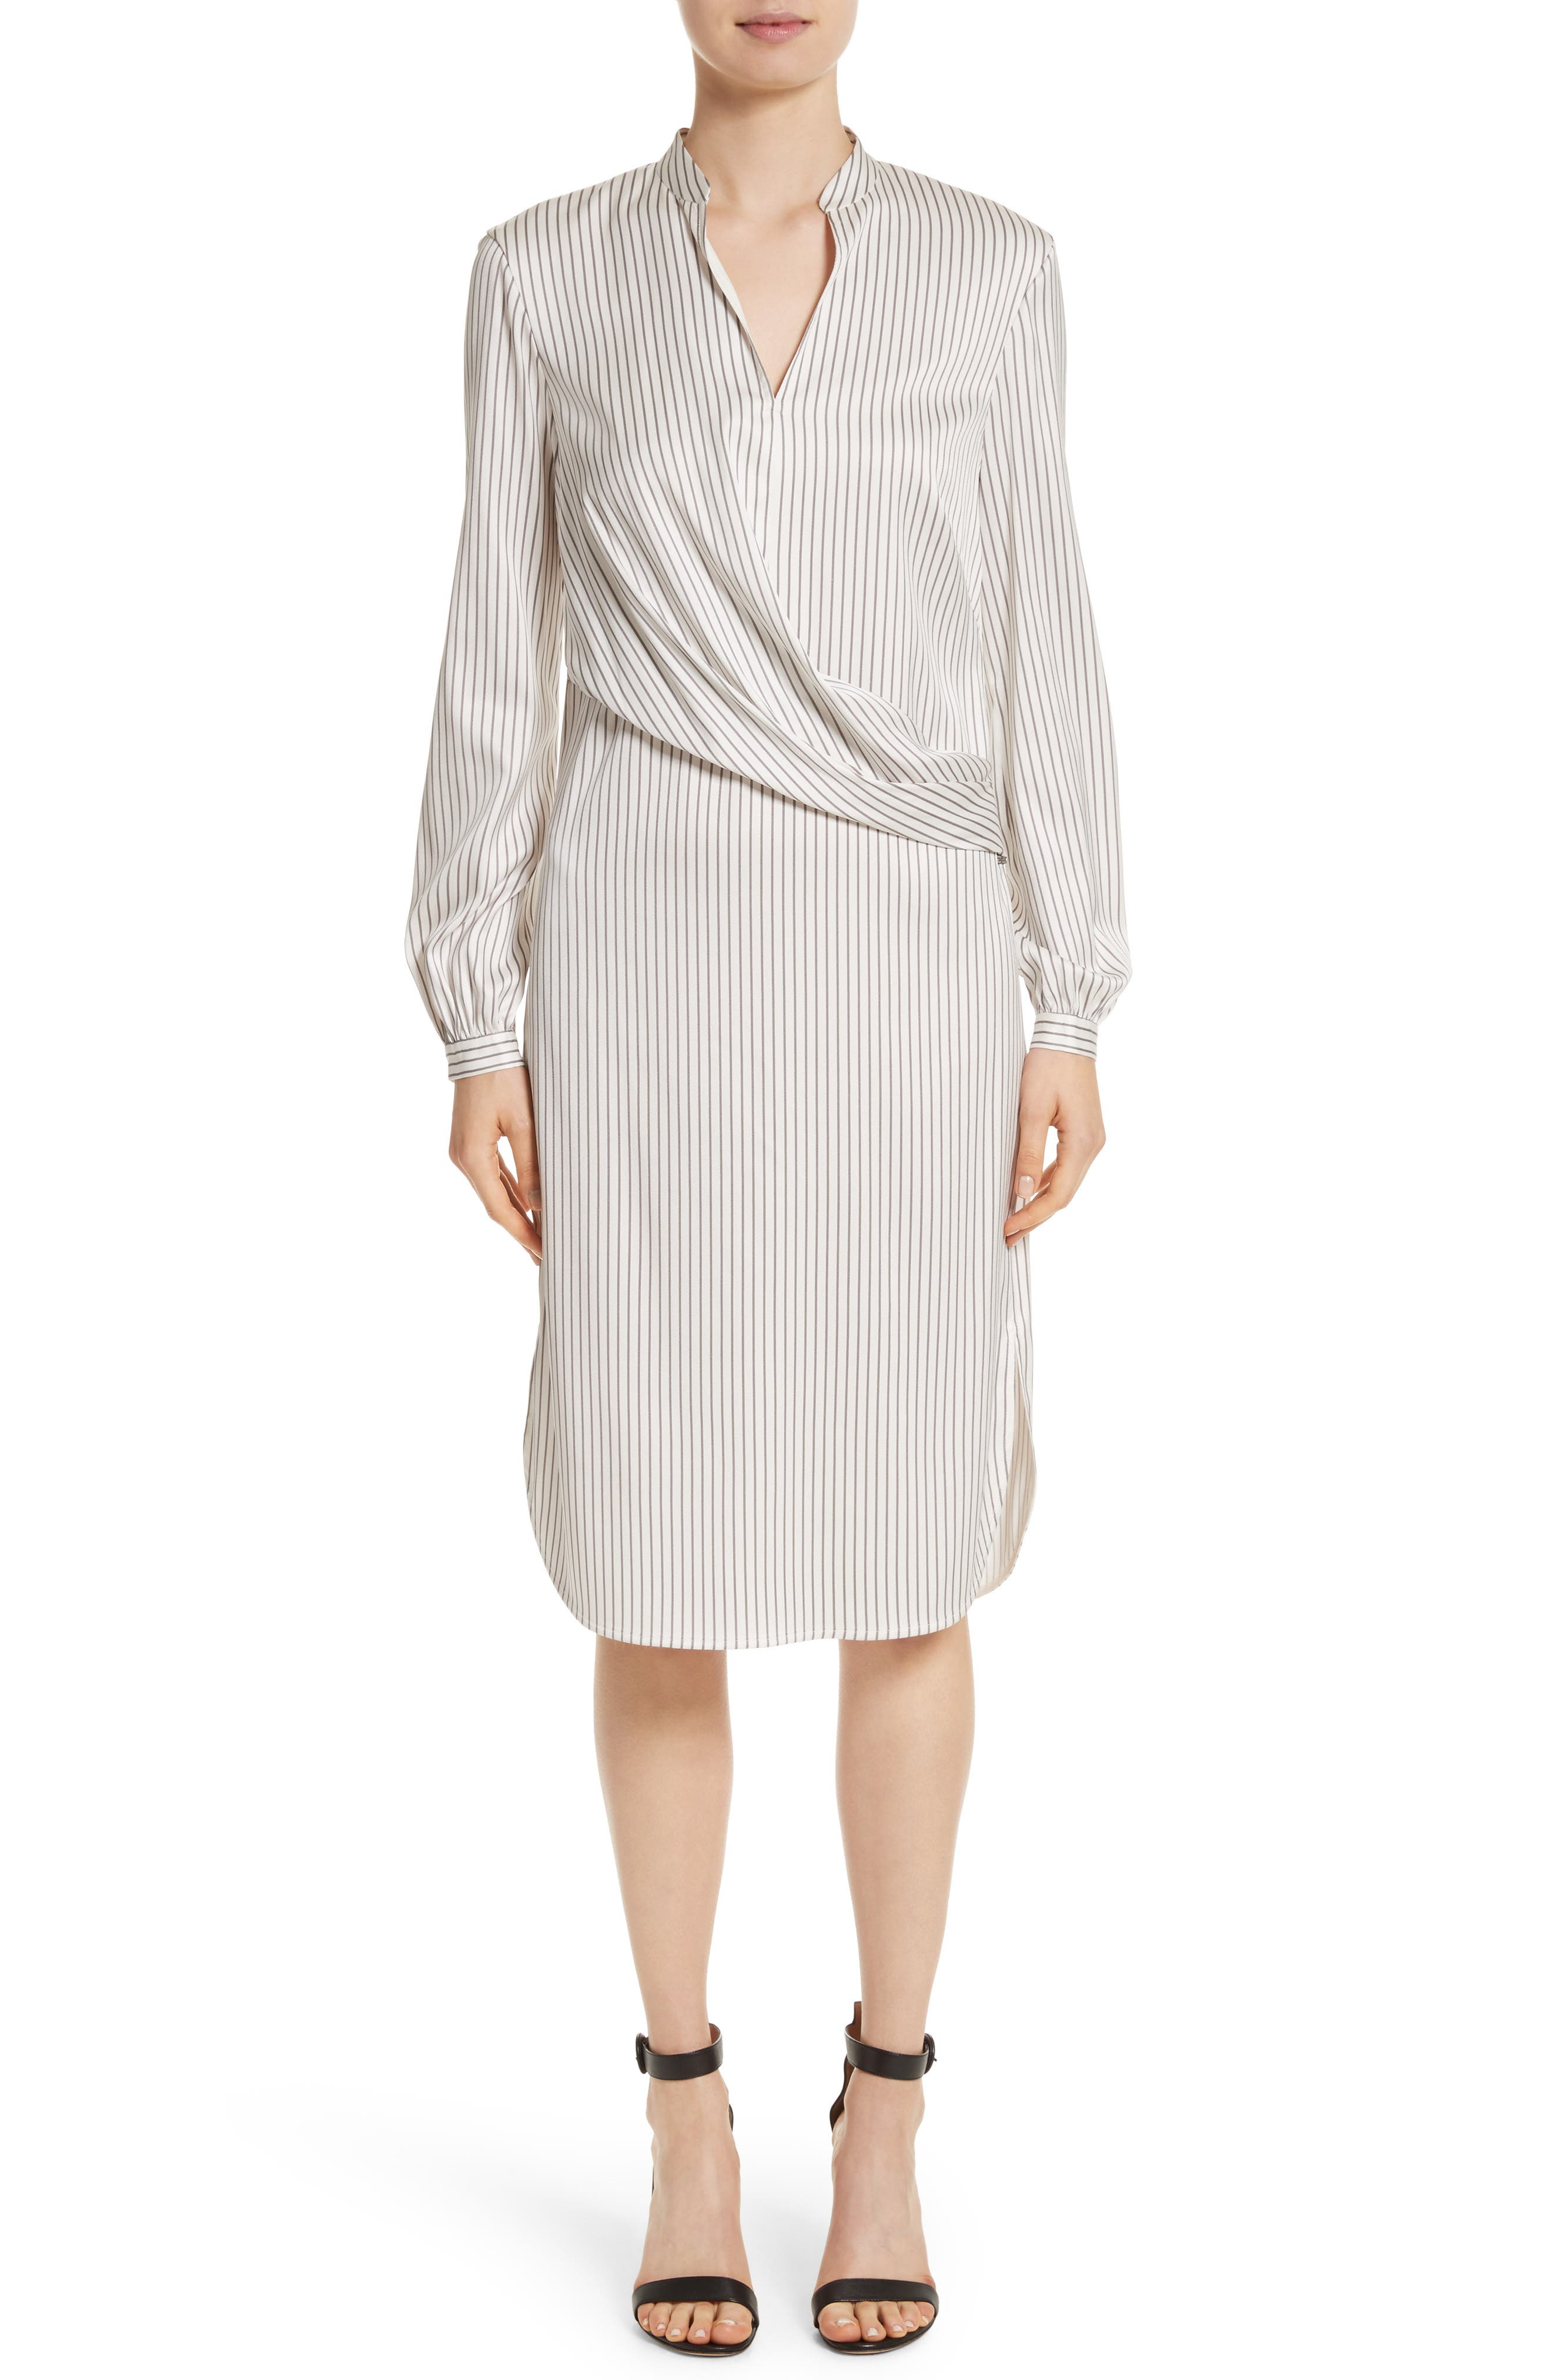 Vertical Stripe Stretch Silk Dress,                             Main thumbnail 1, color,                             Light Stone/Travertine